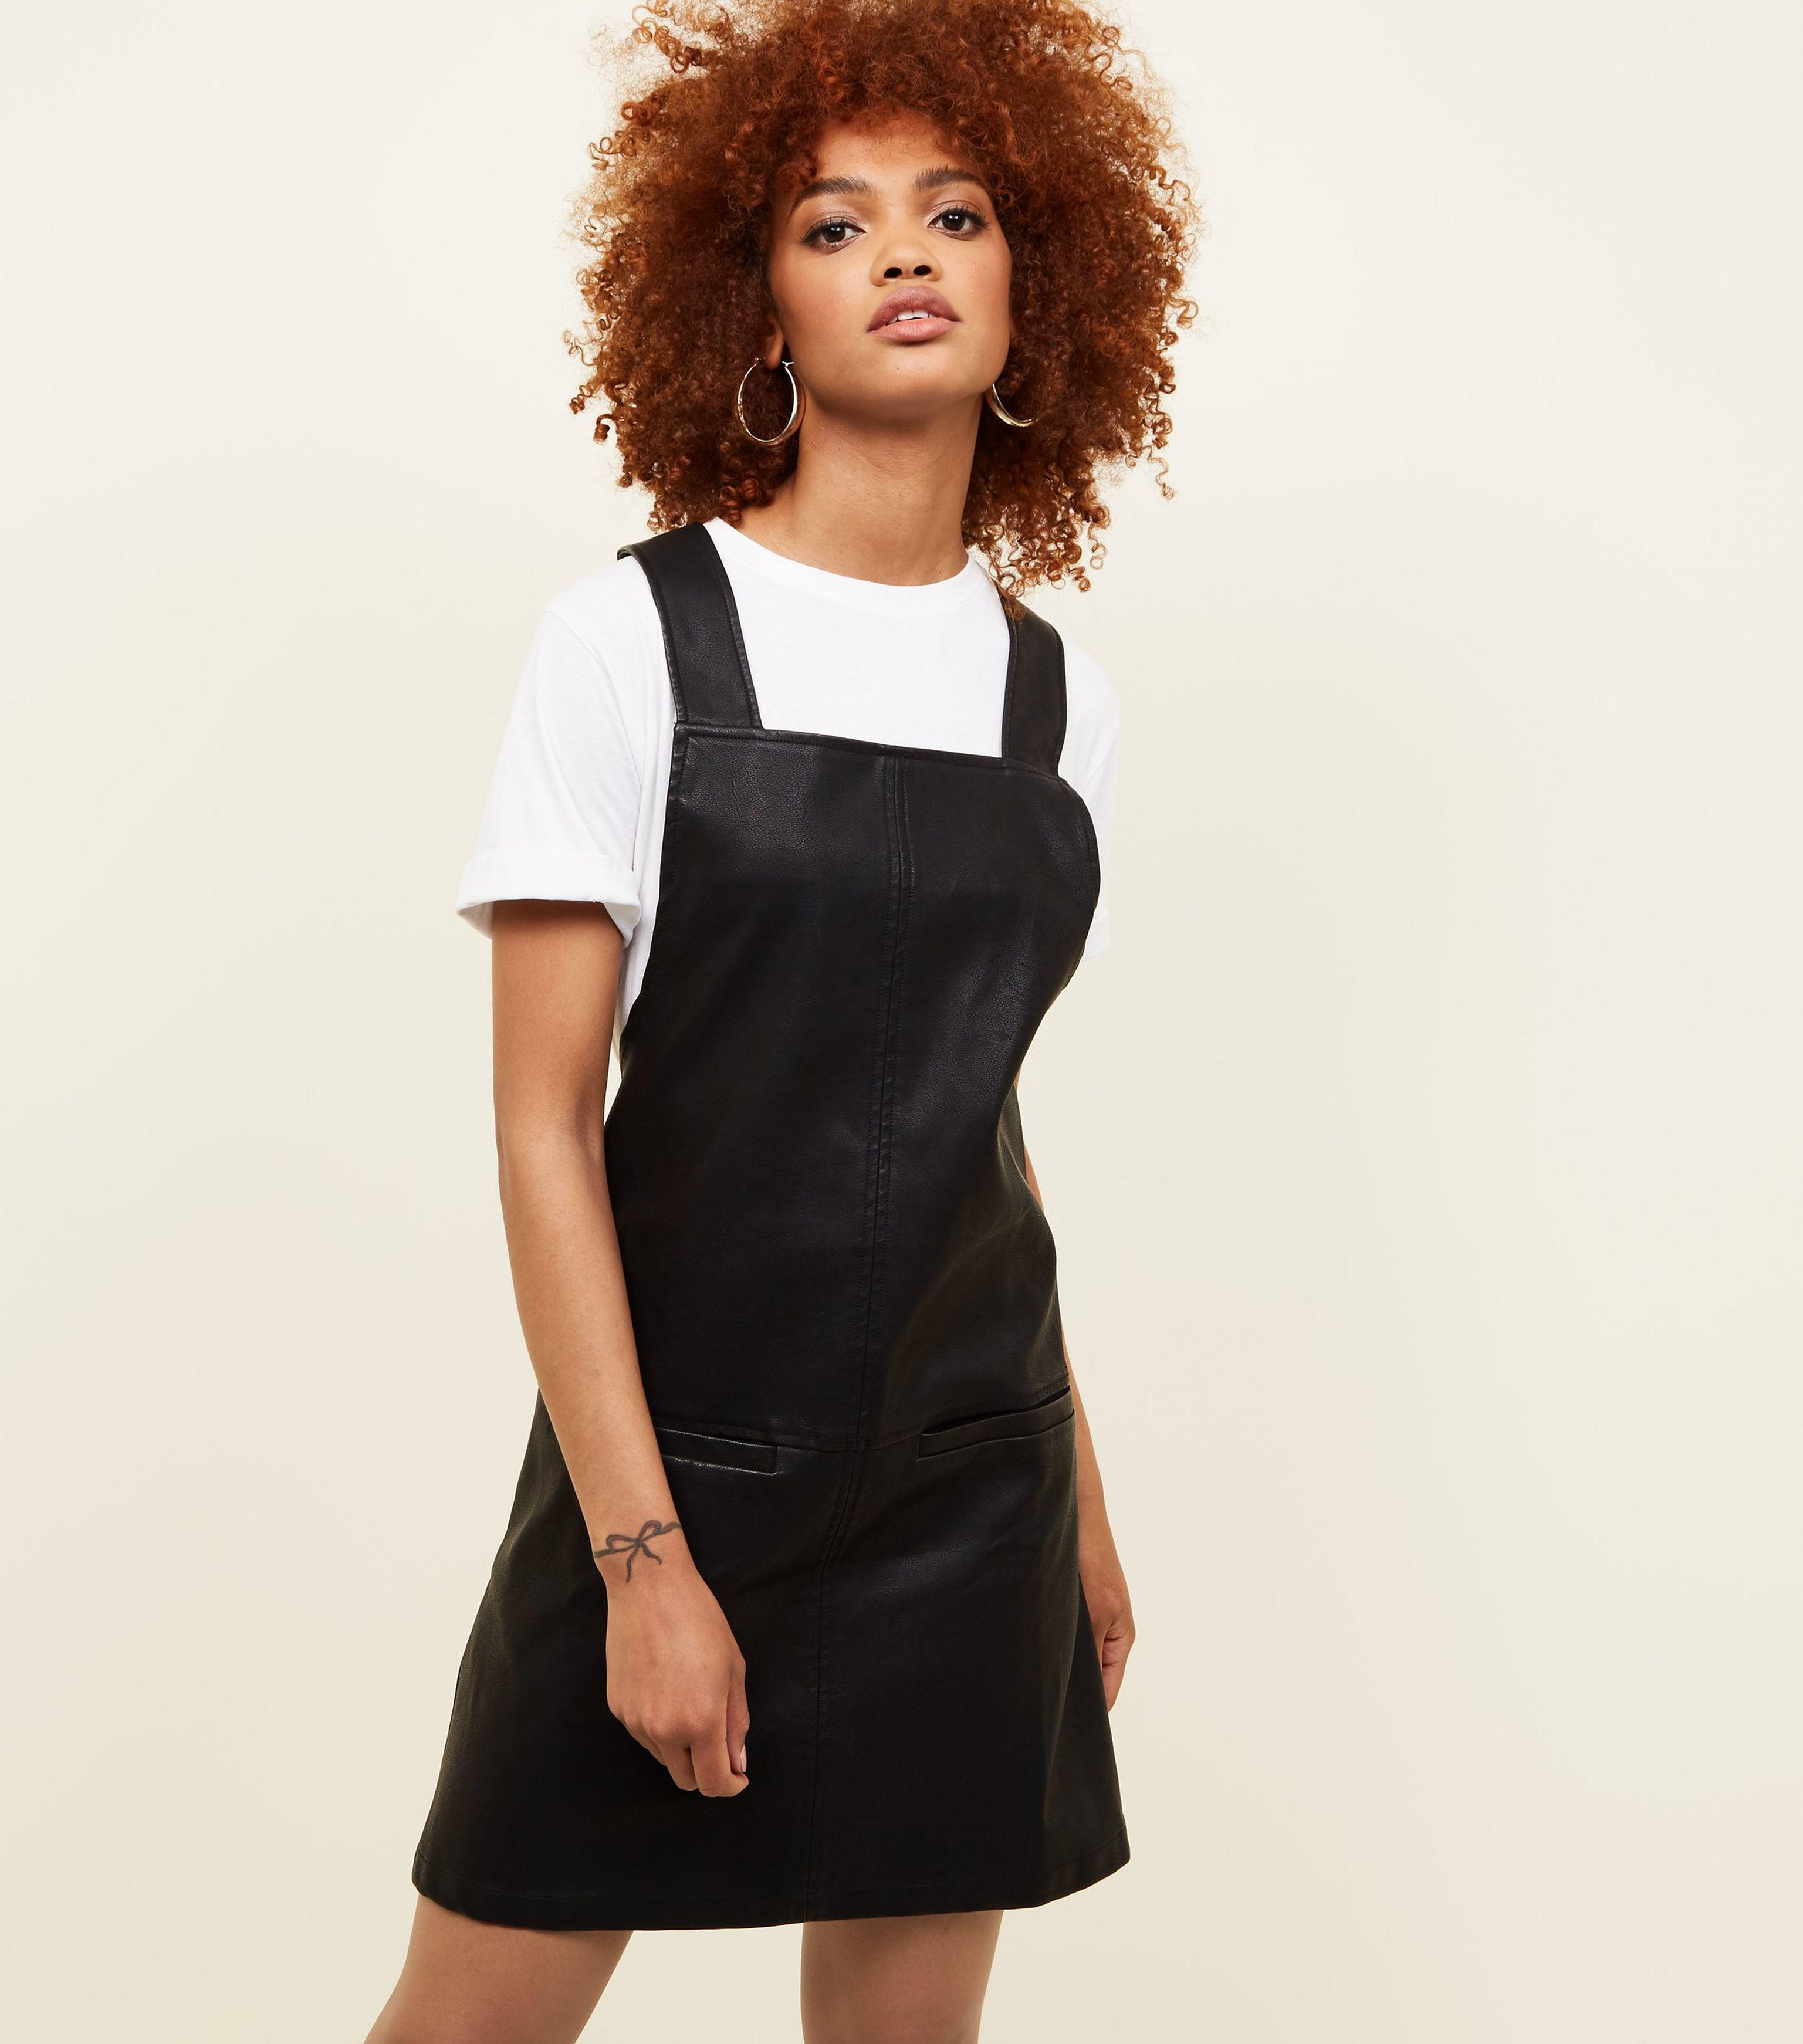 b81ae0f1a3b1bc New Look Black Leather-look Pinafore Dress in Black - Lyst